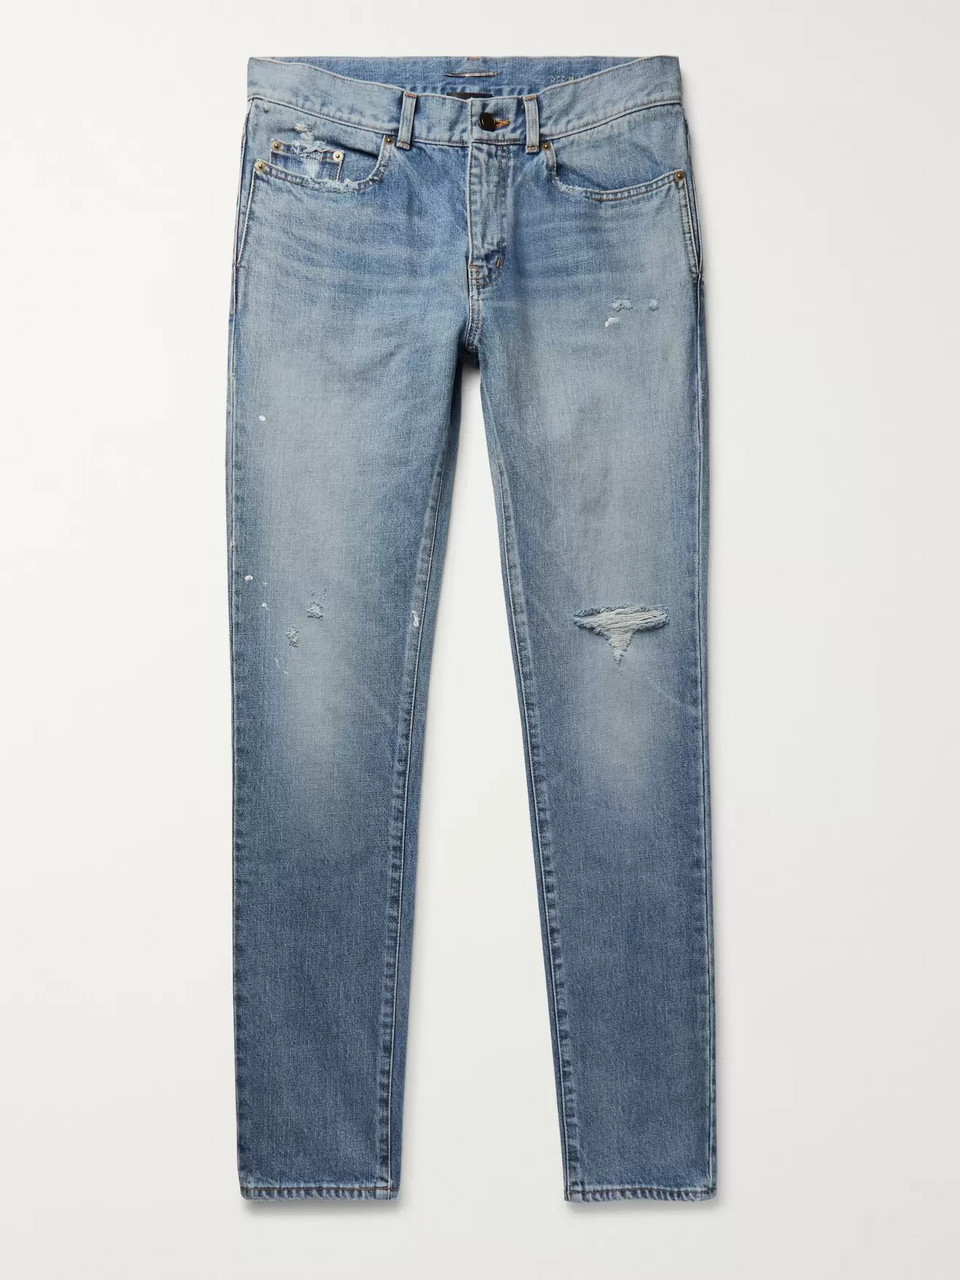 SAINT LAURENT Slim-Fit 15cm Paint-Splattered Distressed Denim Jeans